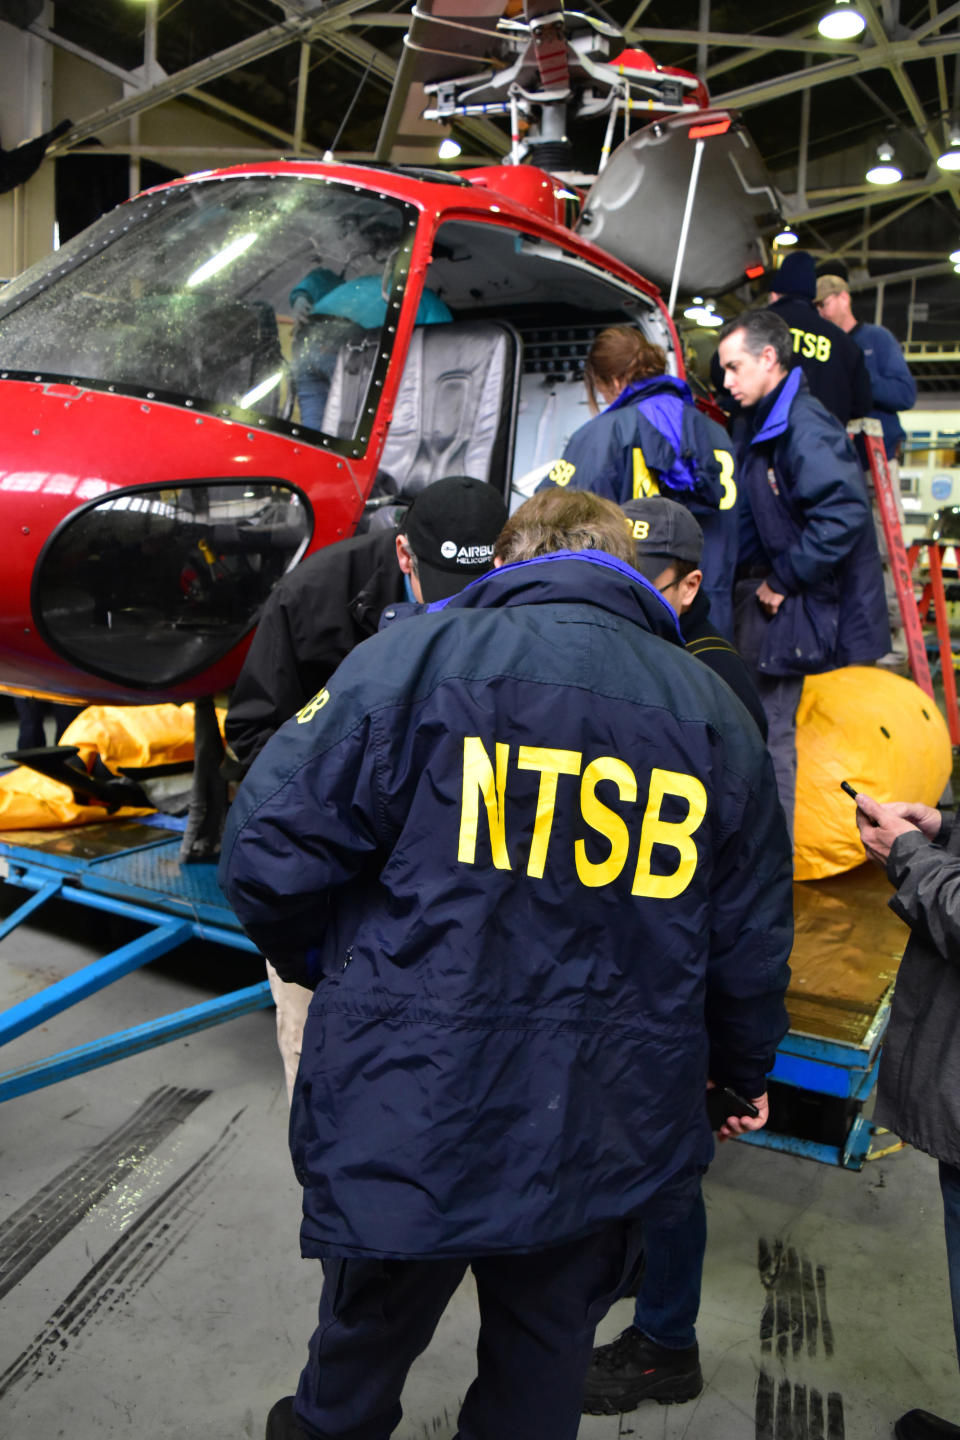 In this March 13, 2018, photo provided by the National Transportation Safety Board, investigators from the NTSB Go Team examine the wreckage of a Liberty Helicopters' helicopter in New York that crashed in the East River on Sunday, March 11. Video from inside the doors-off sightseeing helicopter that crashed in the New York City river last year shows doomed passengers struggling to free themselves from harnesses as the aircraft fills with water. NTSB released transcript of the video on Monday, Sept. 23, 2019. (Chris O'Neil/NTSB via AP)